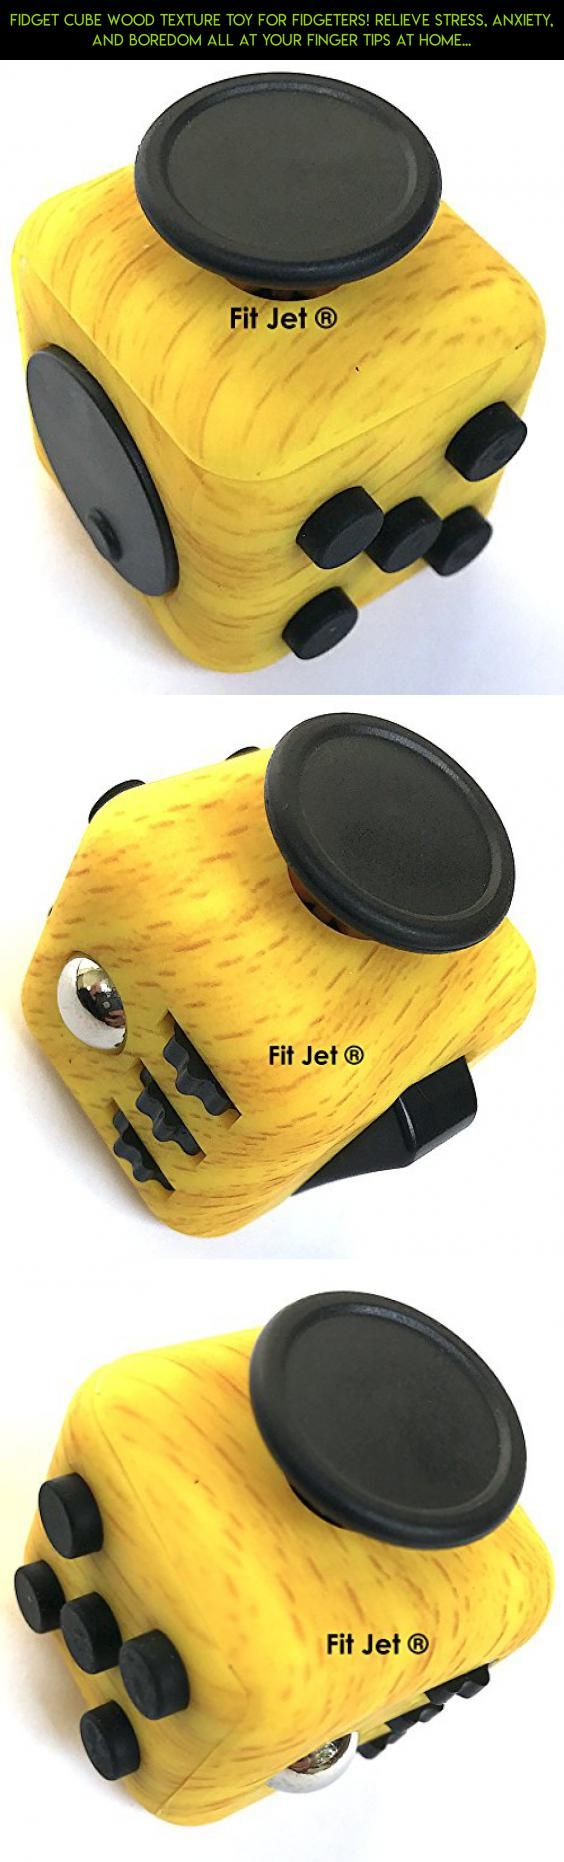 Elegant Fidget Cube WOOD Texture Toy for Fidgeters Relieve Stress Anxiety and Boredom all